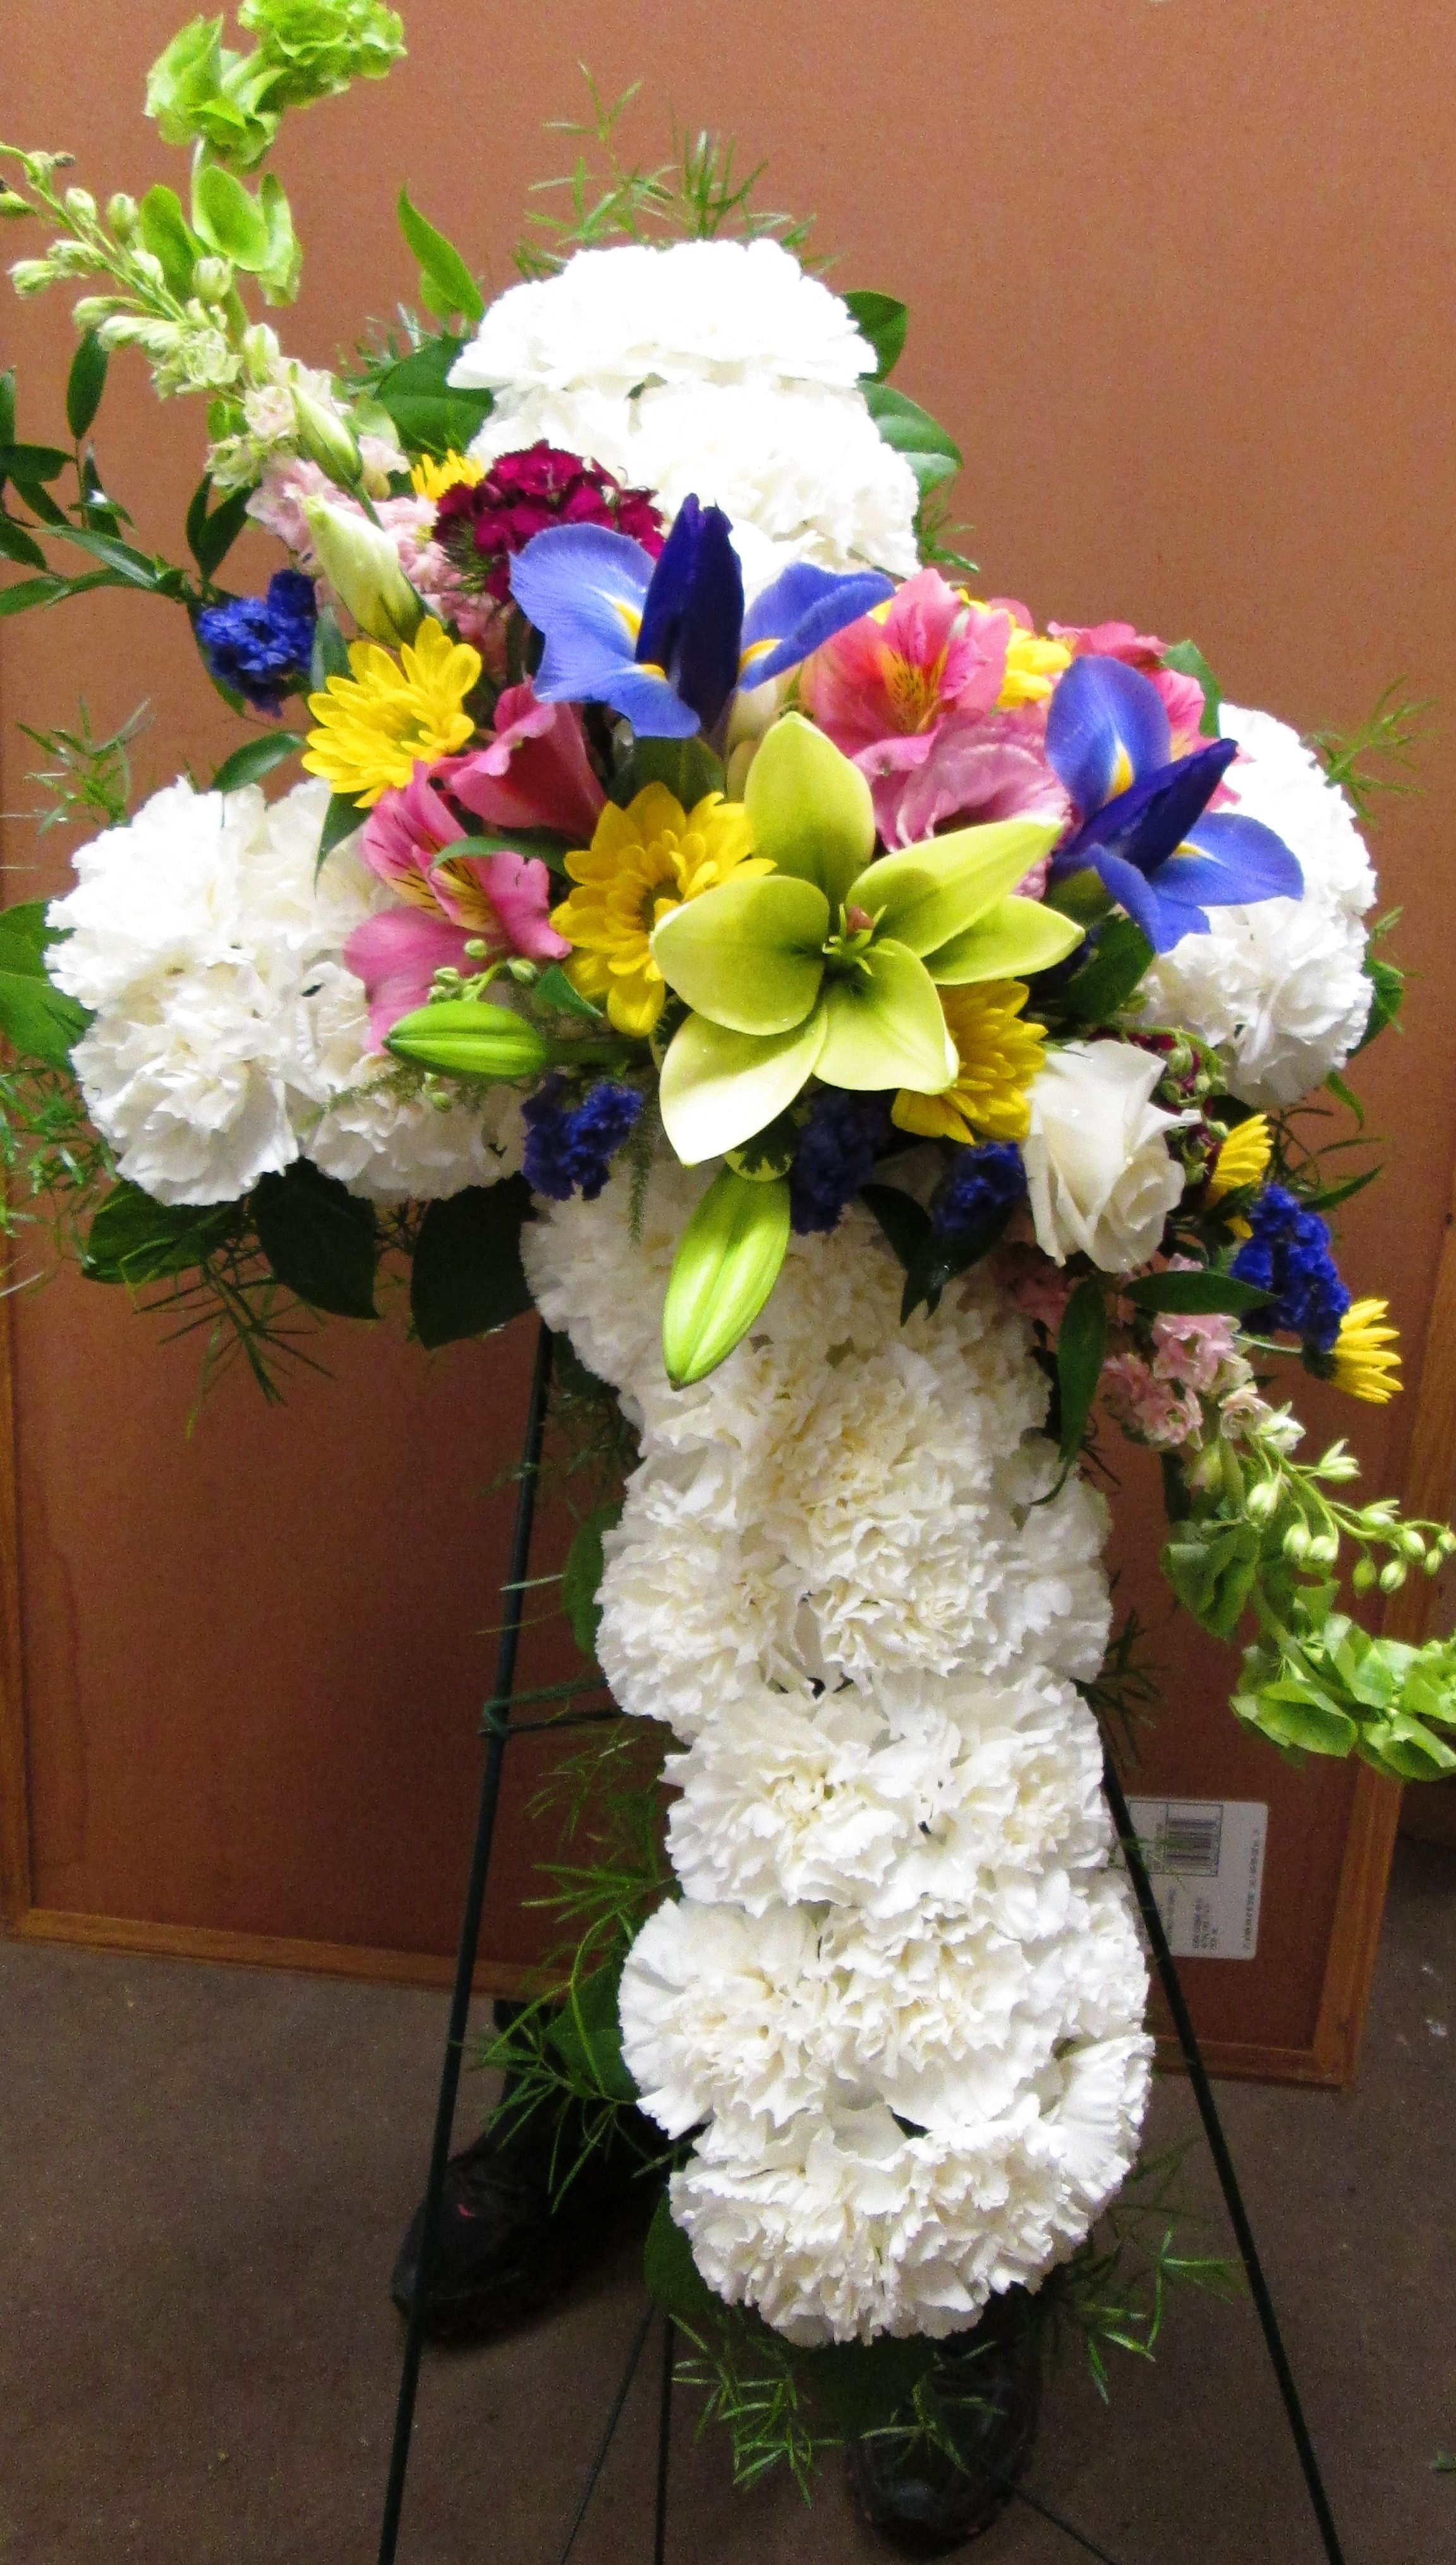 Standing Cross Funeral Spray Made Of White Carnations With A